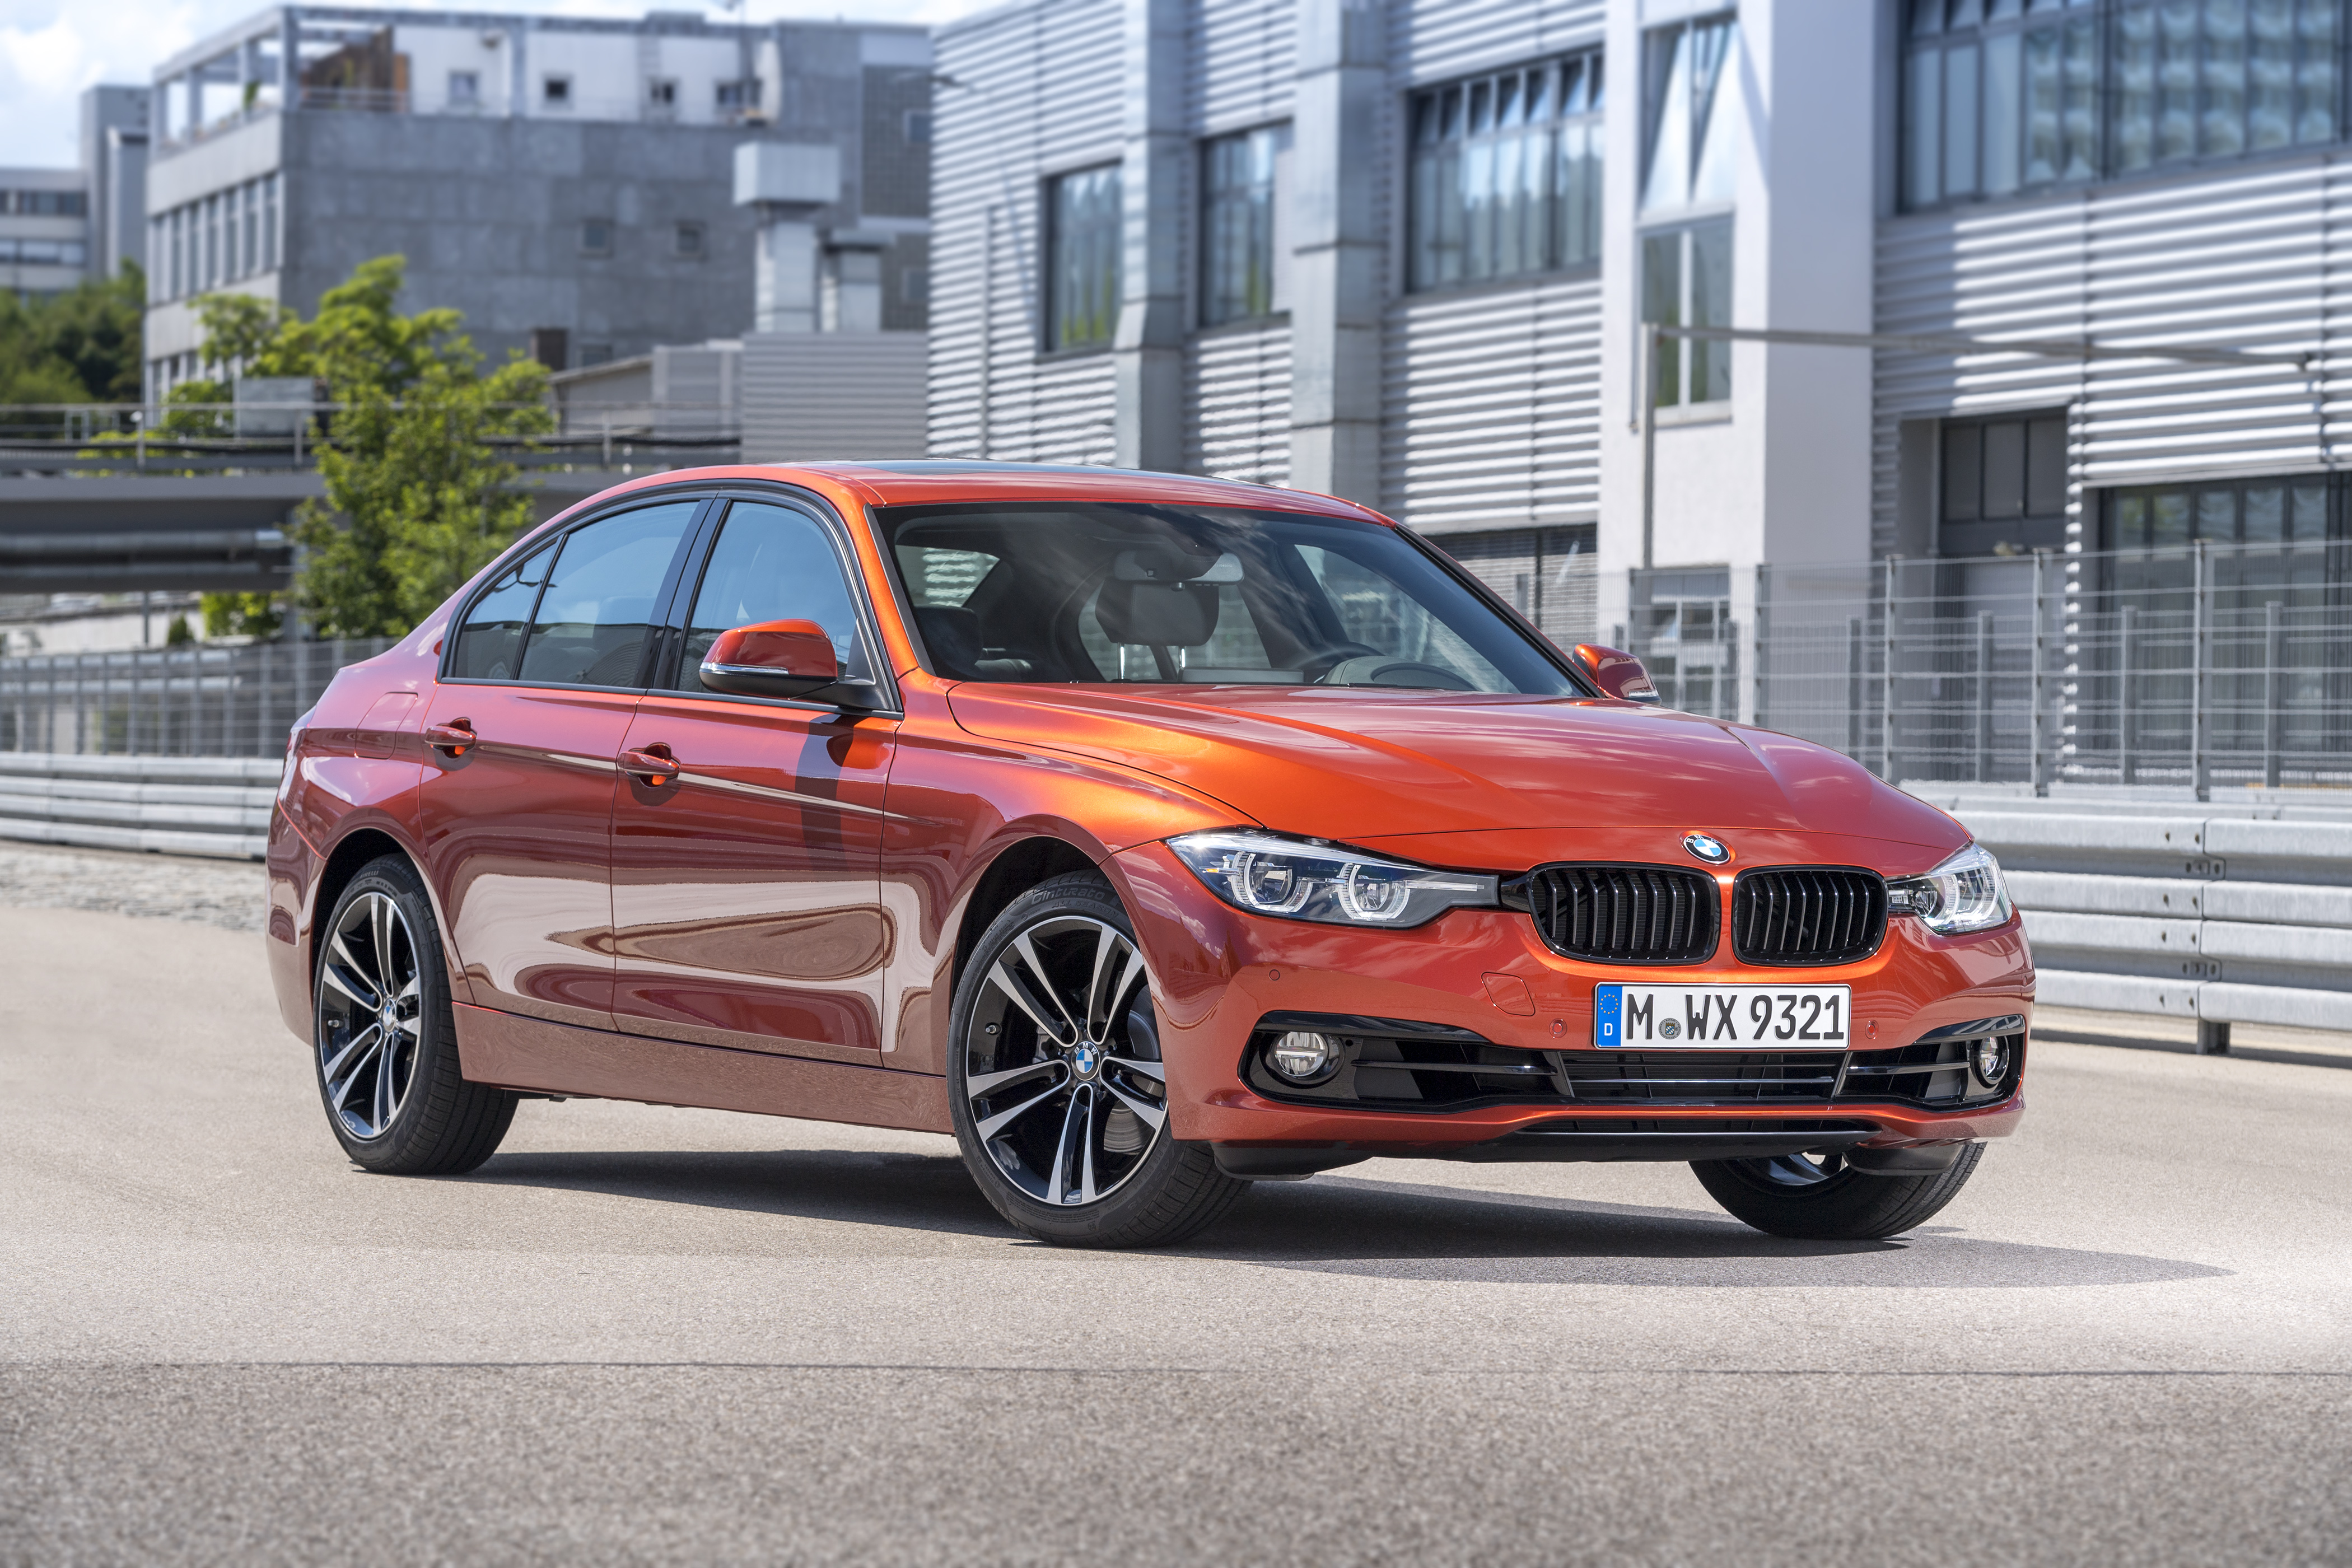 Bmw 3 Series Shadow Edition Launched In Two Variants Motorbash Com